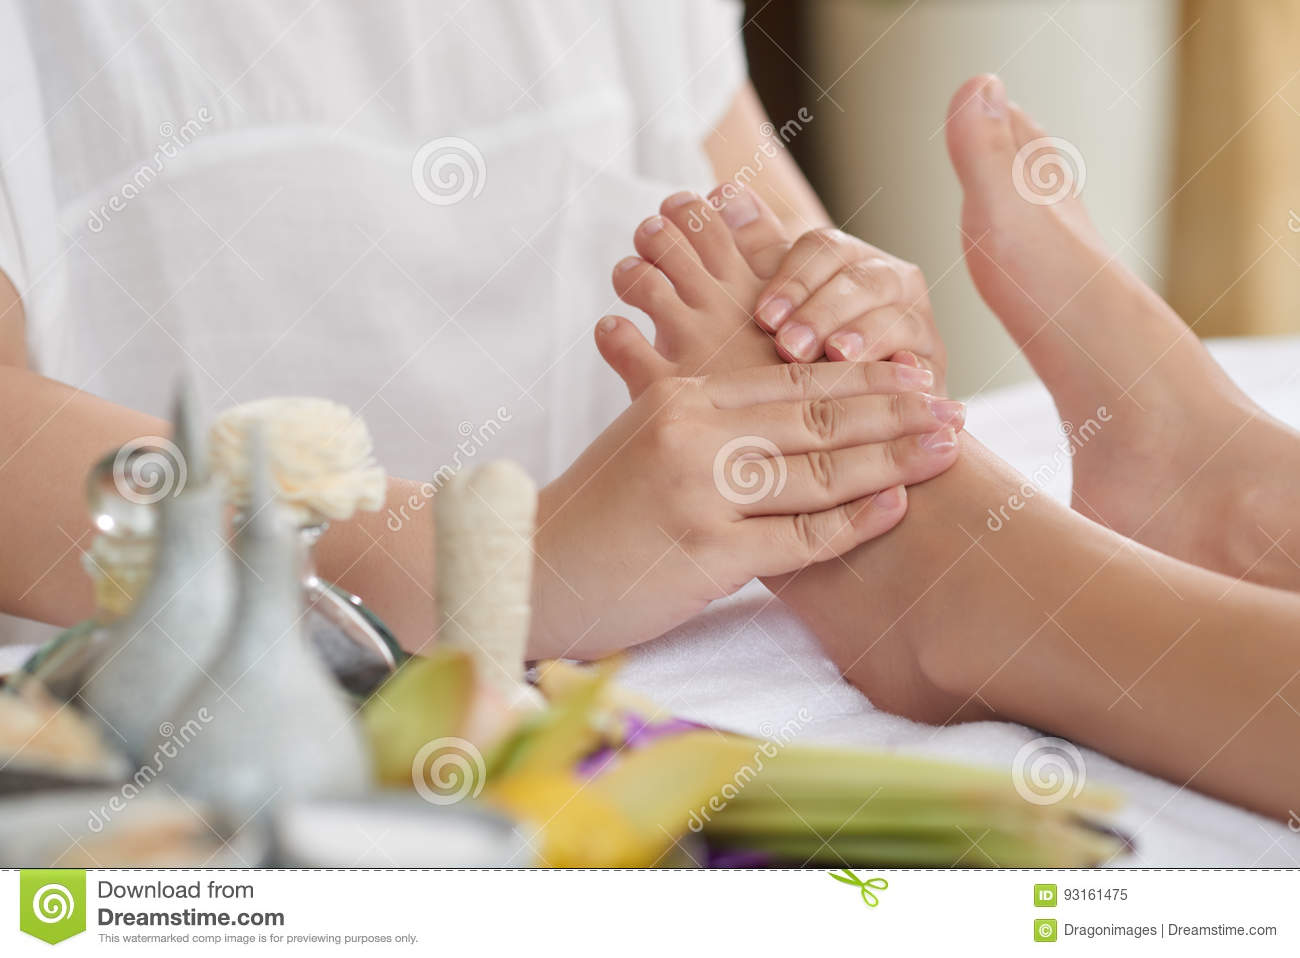 Baby Foot De Salon foot massage after long working day stock image - image of